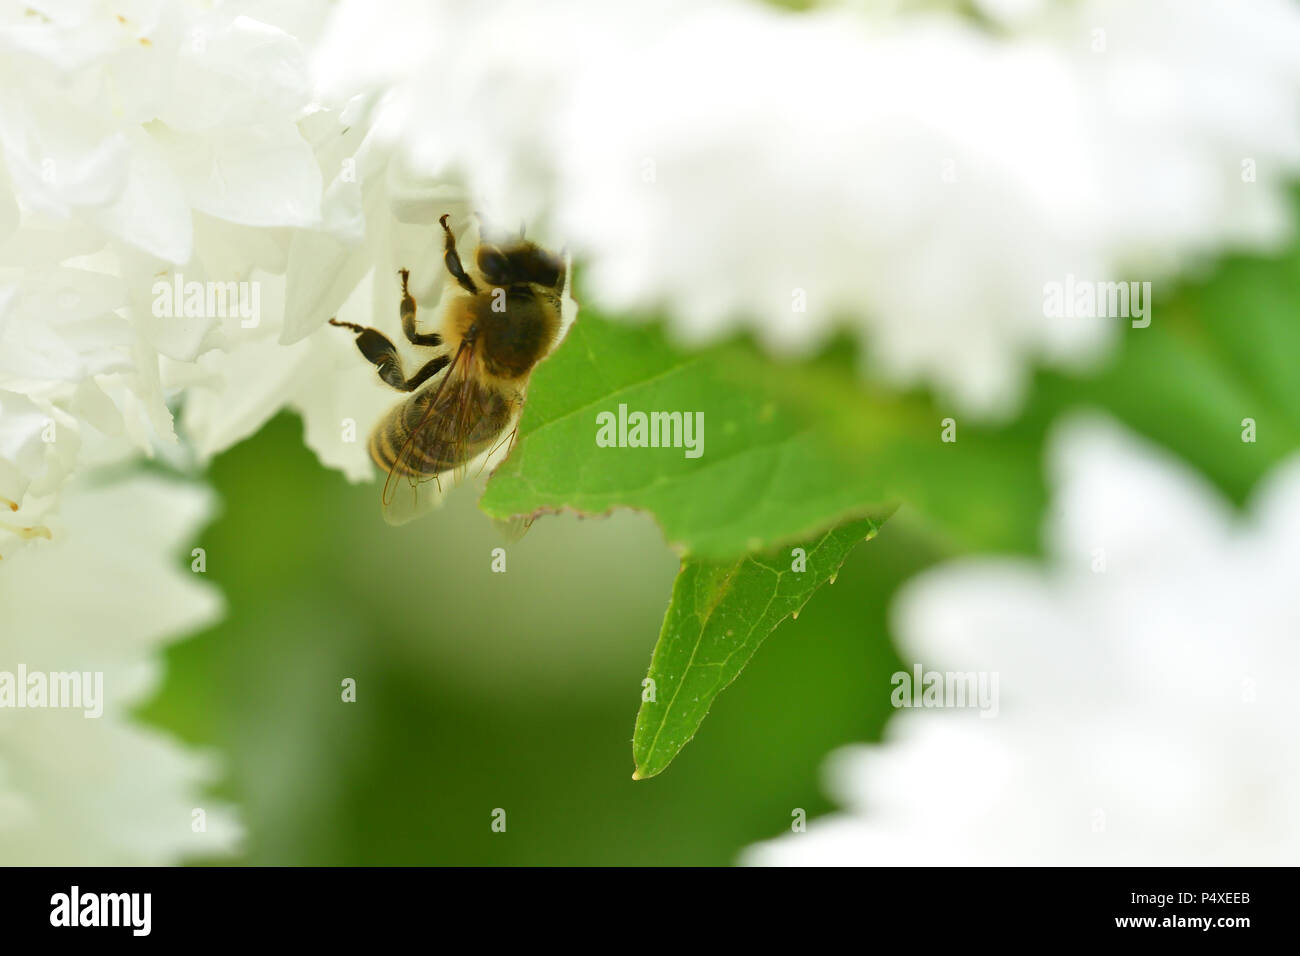 Honey Bee polinating on the white flower macro - Stock Image